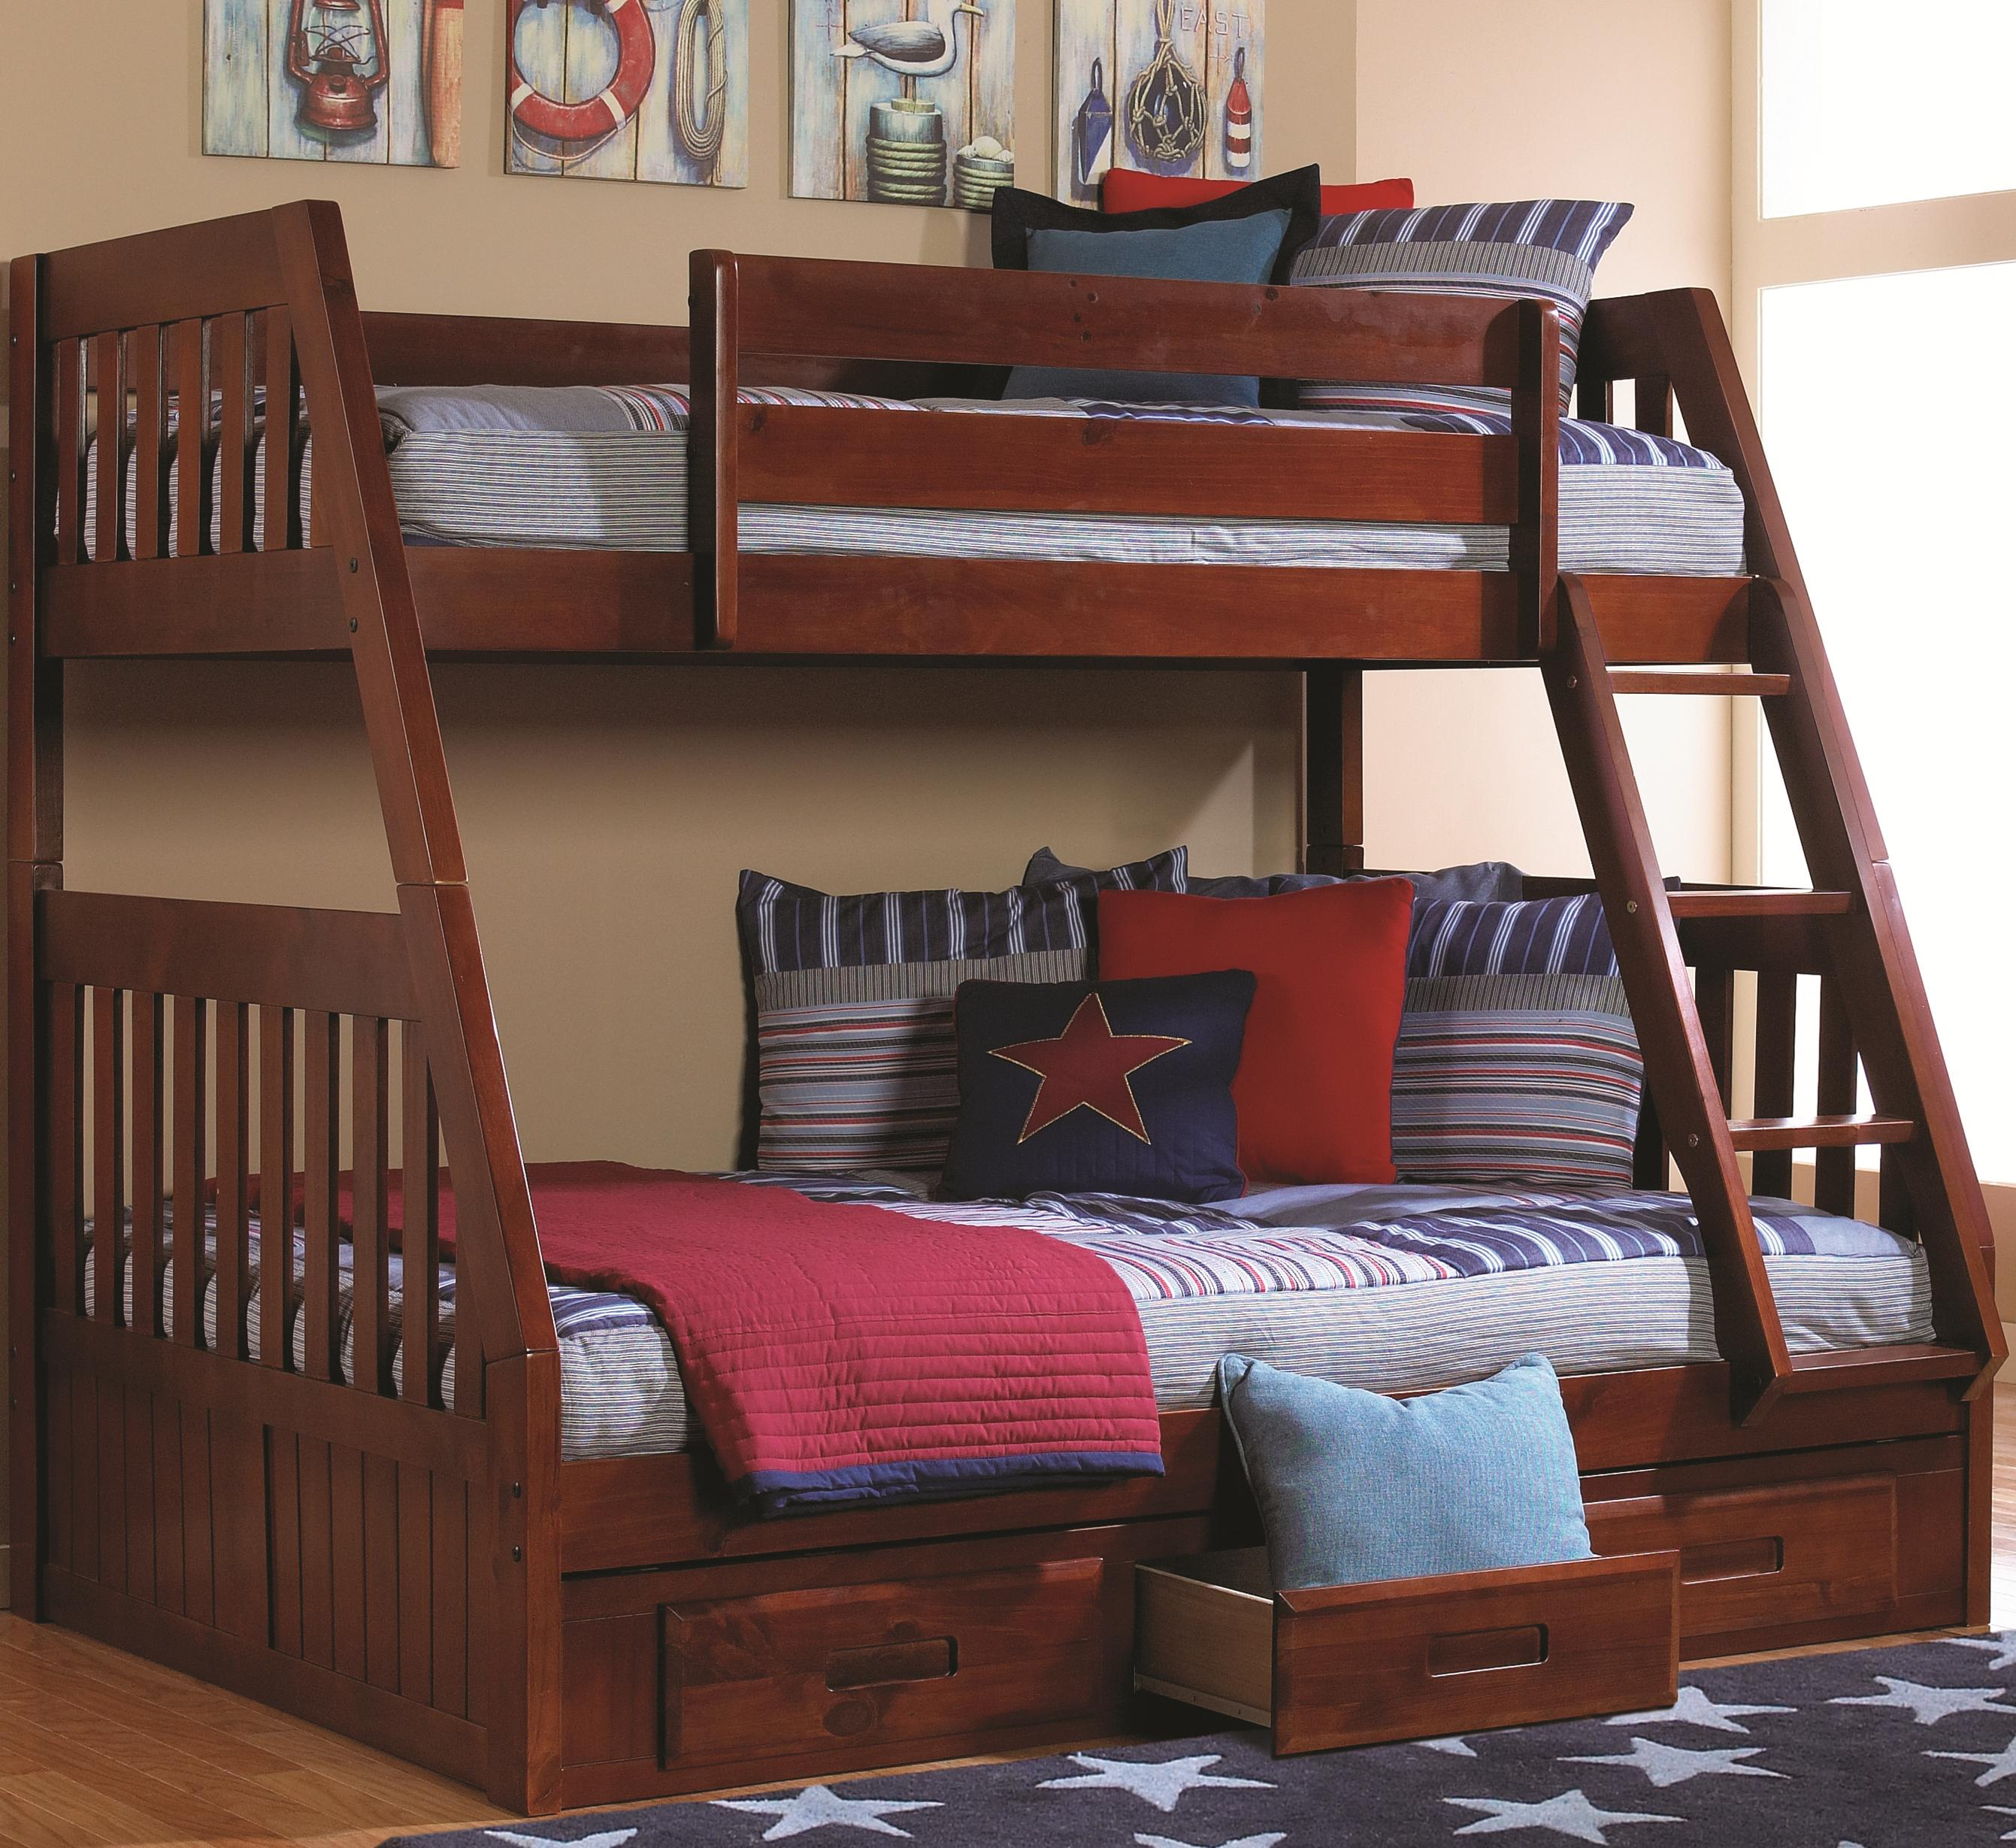 bed gallery full kids headboards bob discount bunk furniture config twin and large keystone s twinfull beds p stairway room